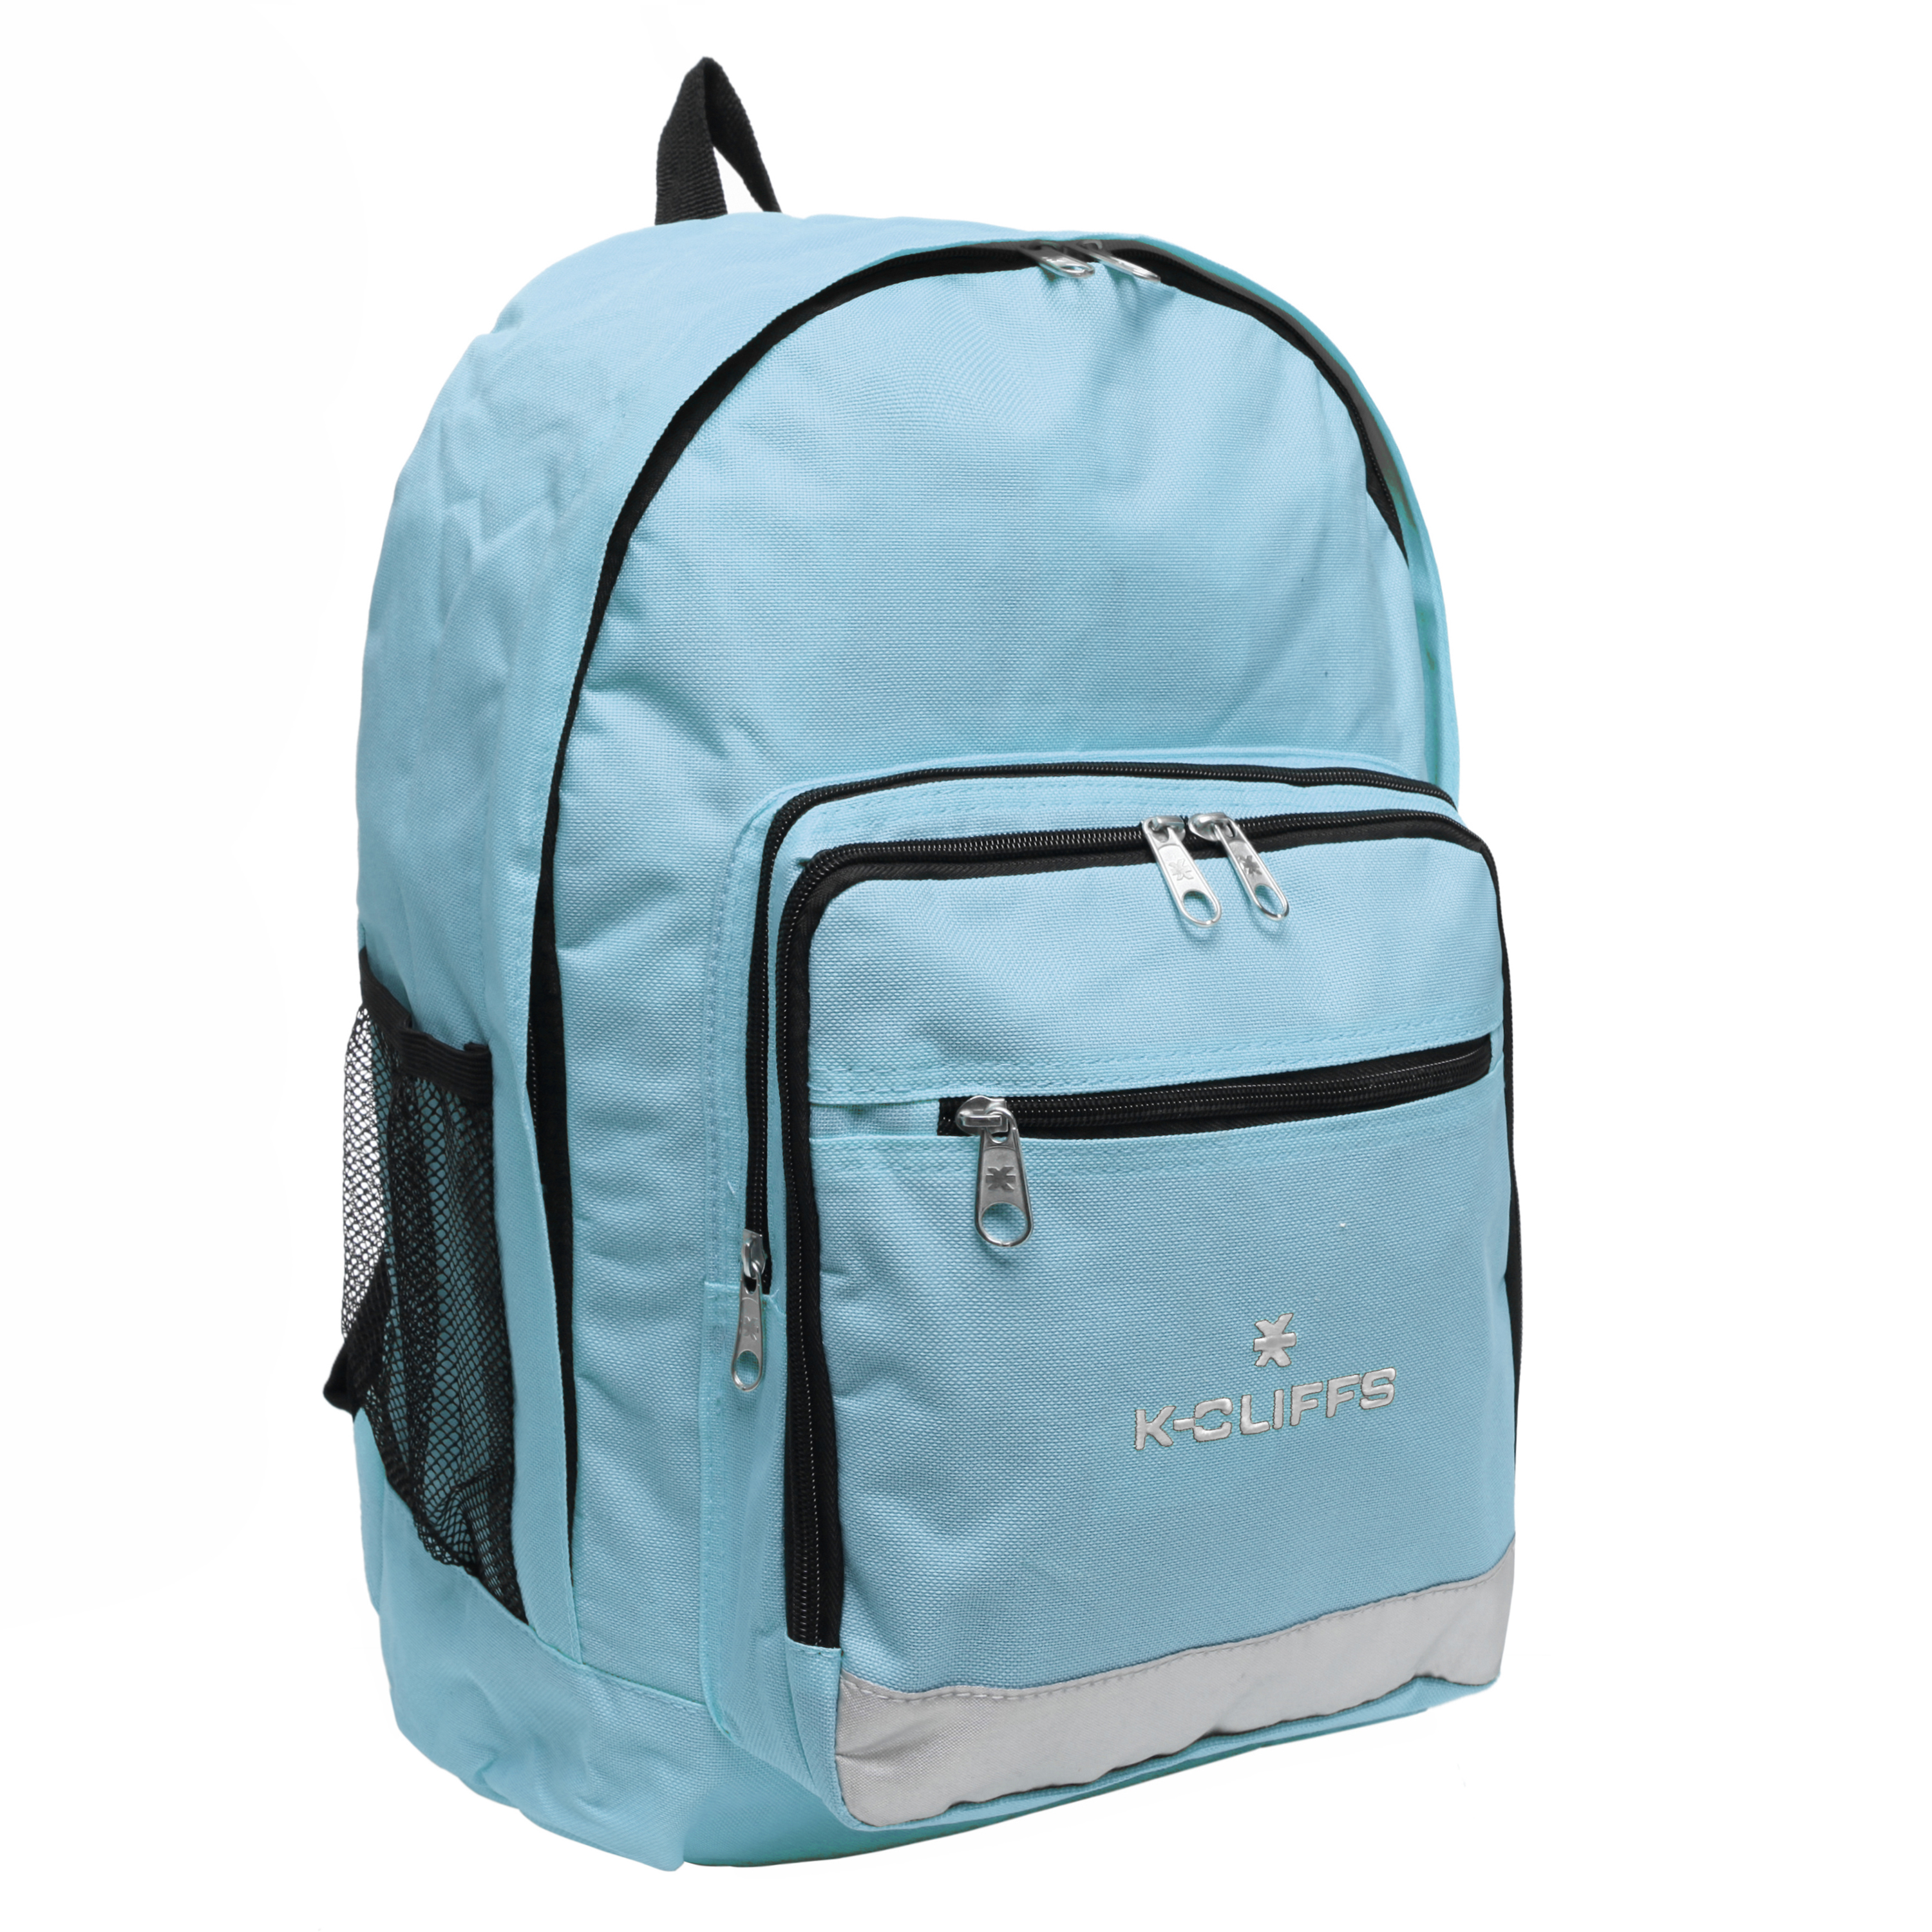 Wholesale Backpacks Blue Multi Compartment Full Size Backpack with Reflective Strip